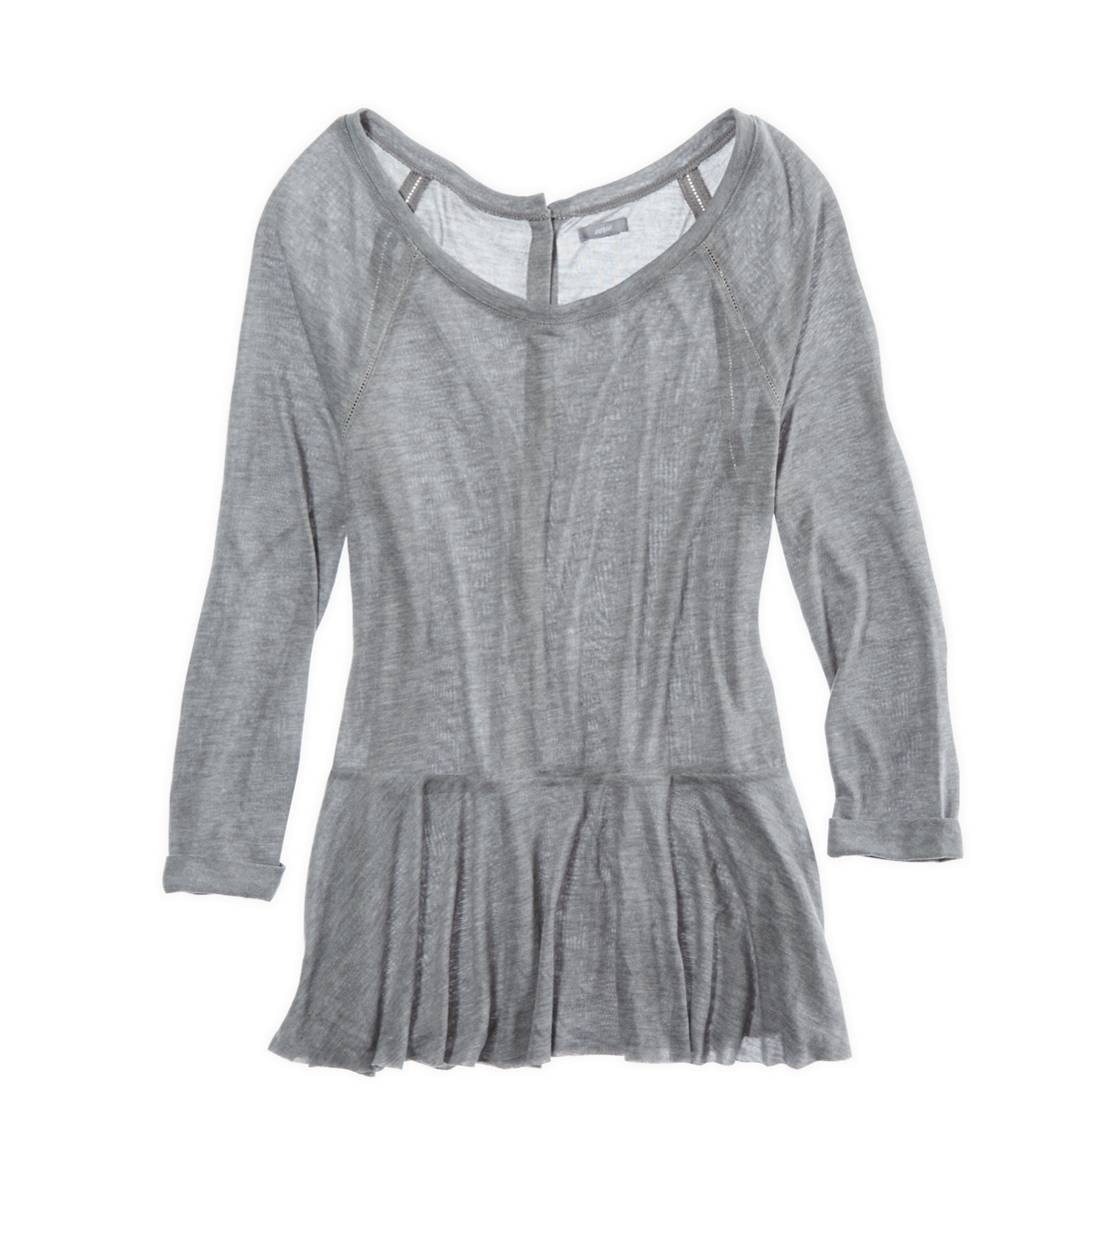 Dark Heather Grey Aerie Button Back Peplum T-shirt